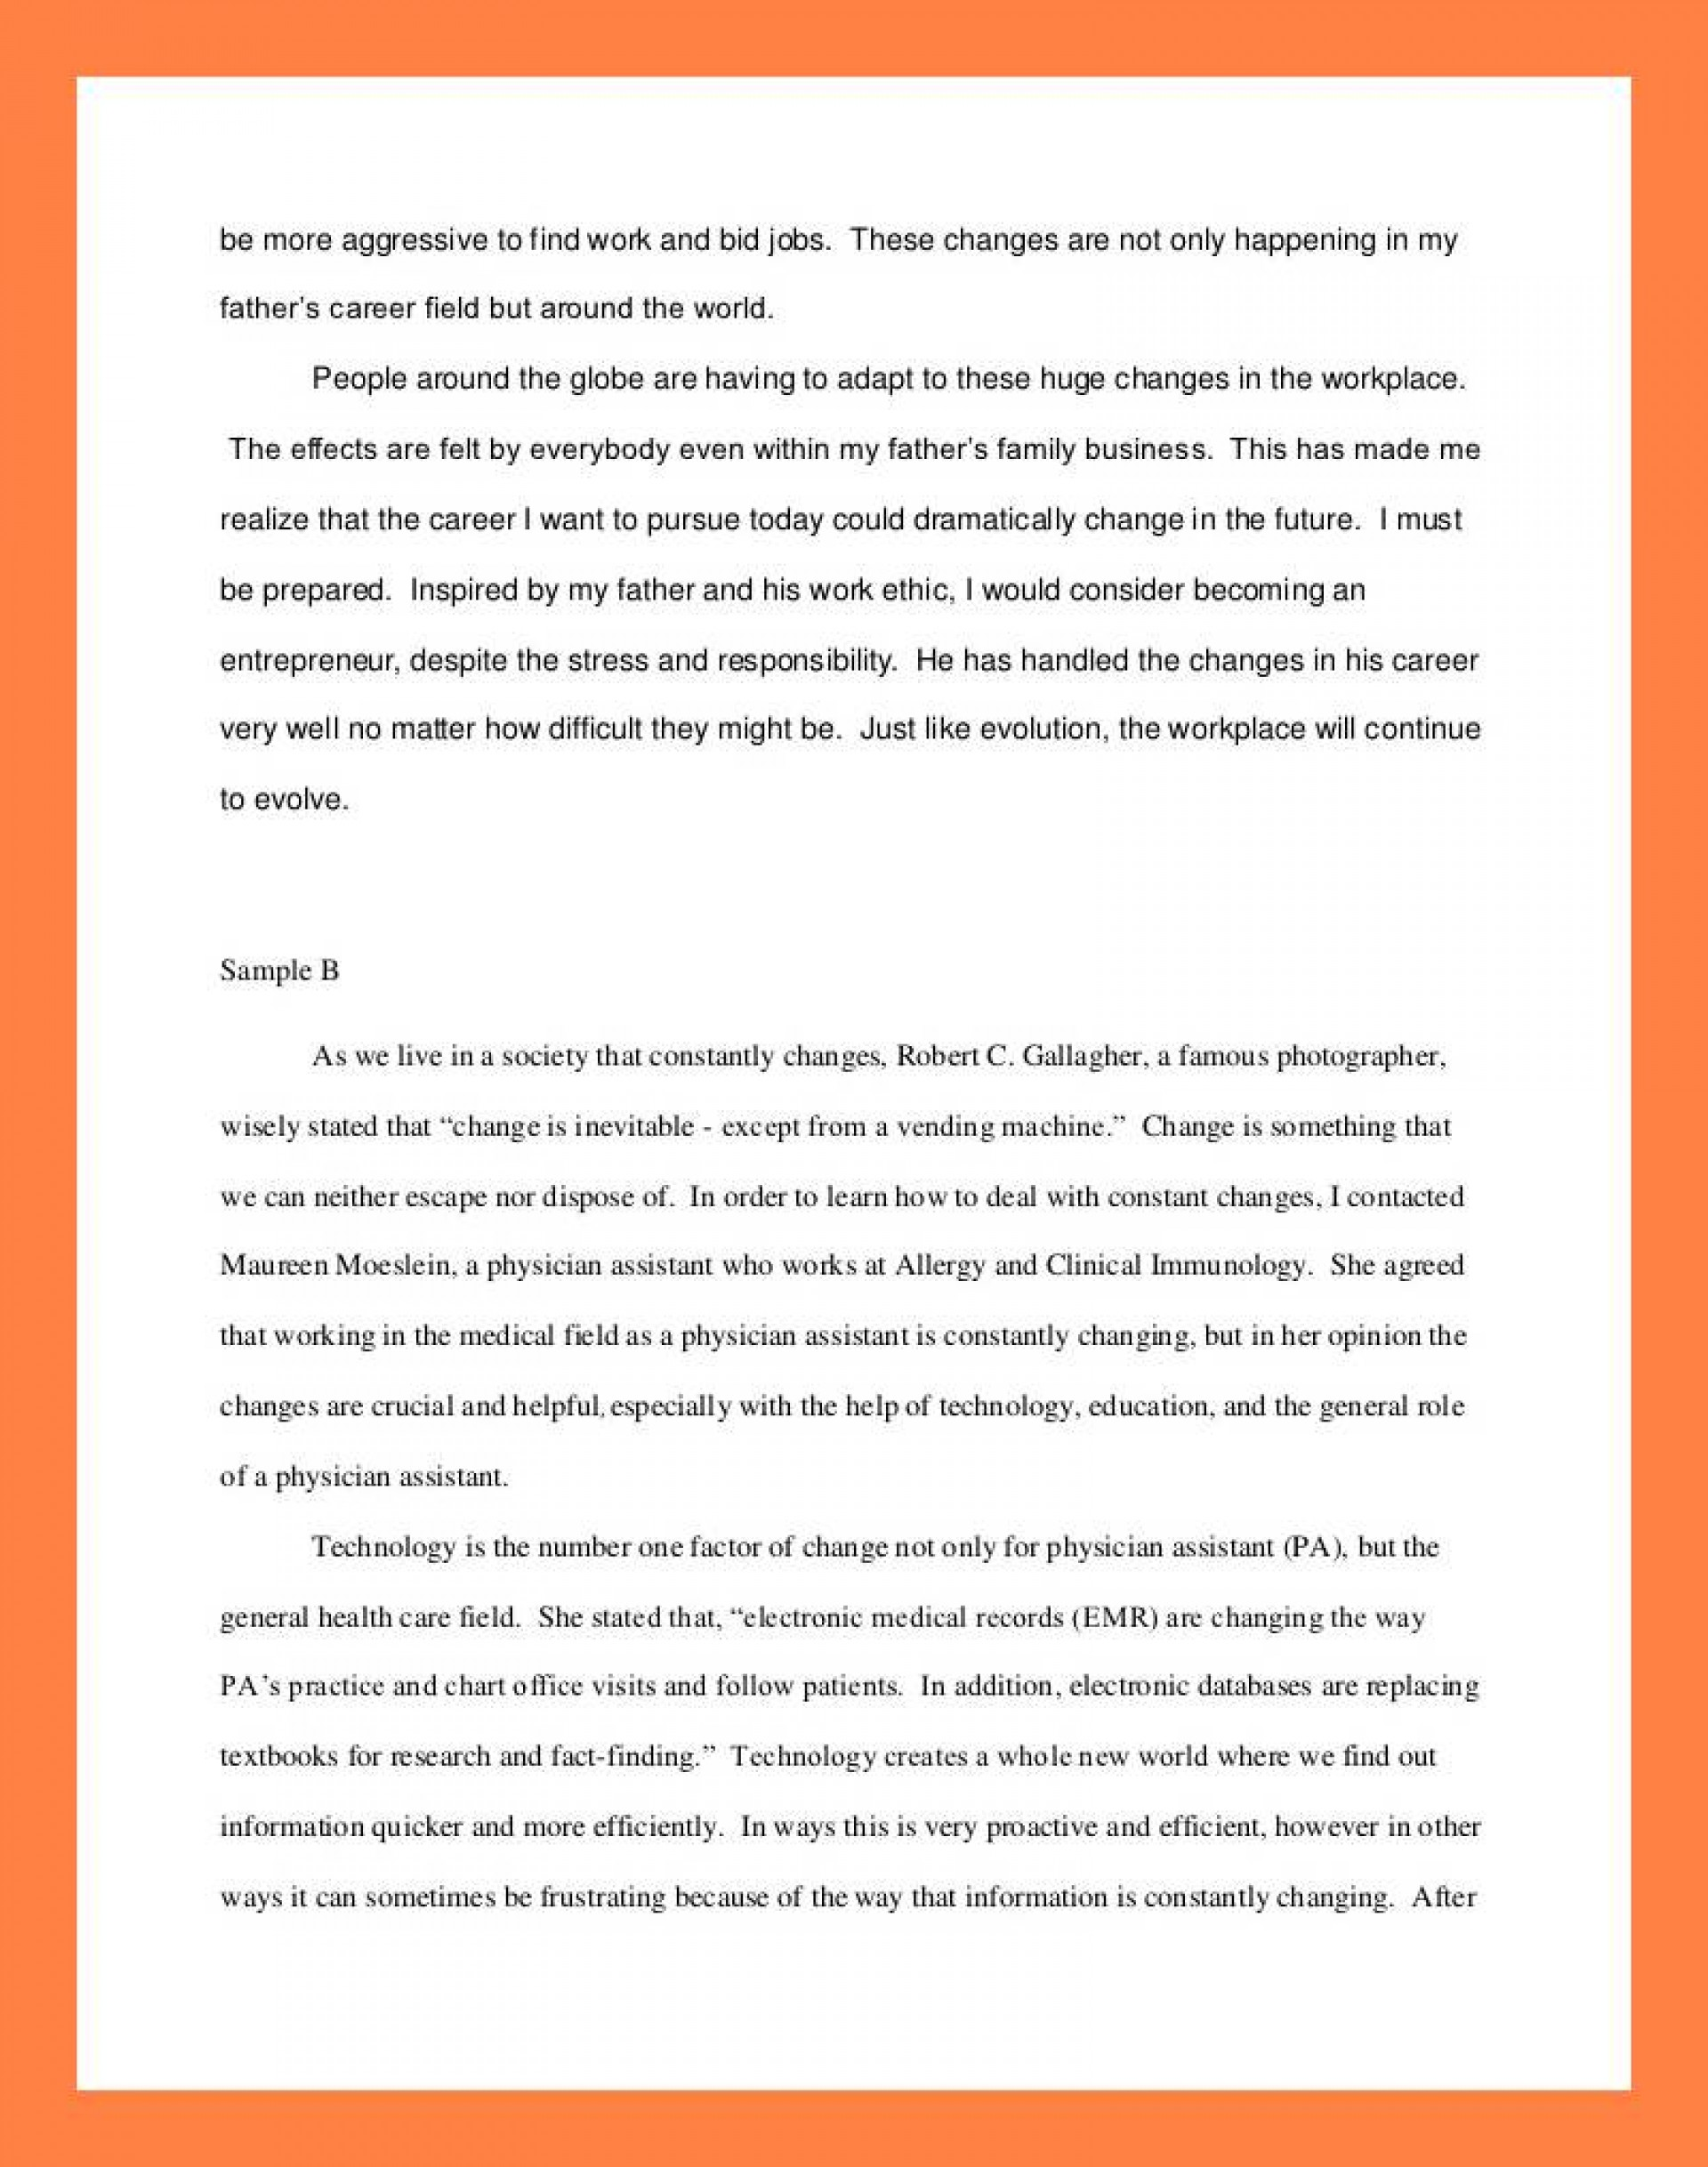 012 Interview Essay Example Examples Of Student Reflections Shocking Introduction Sample Mla Format 1920